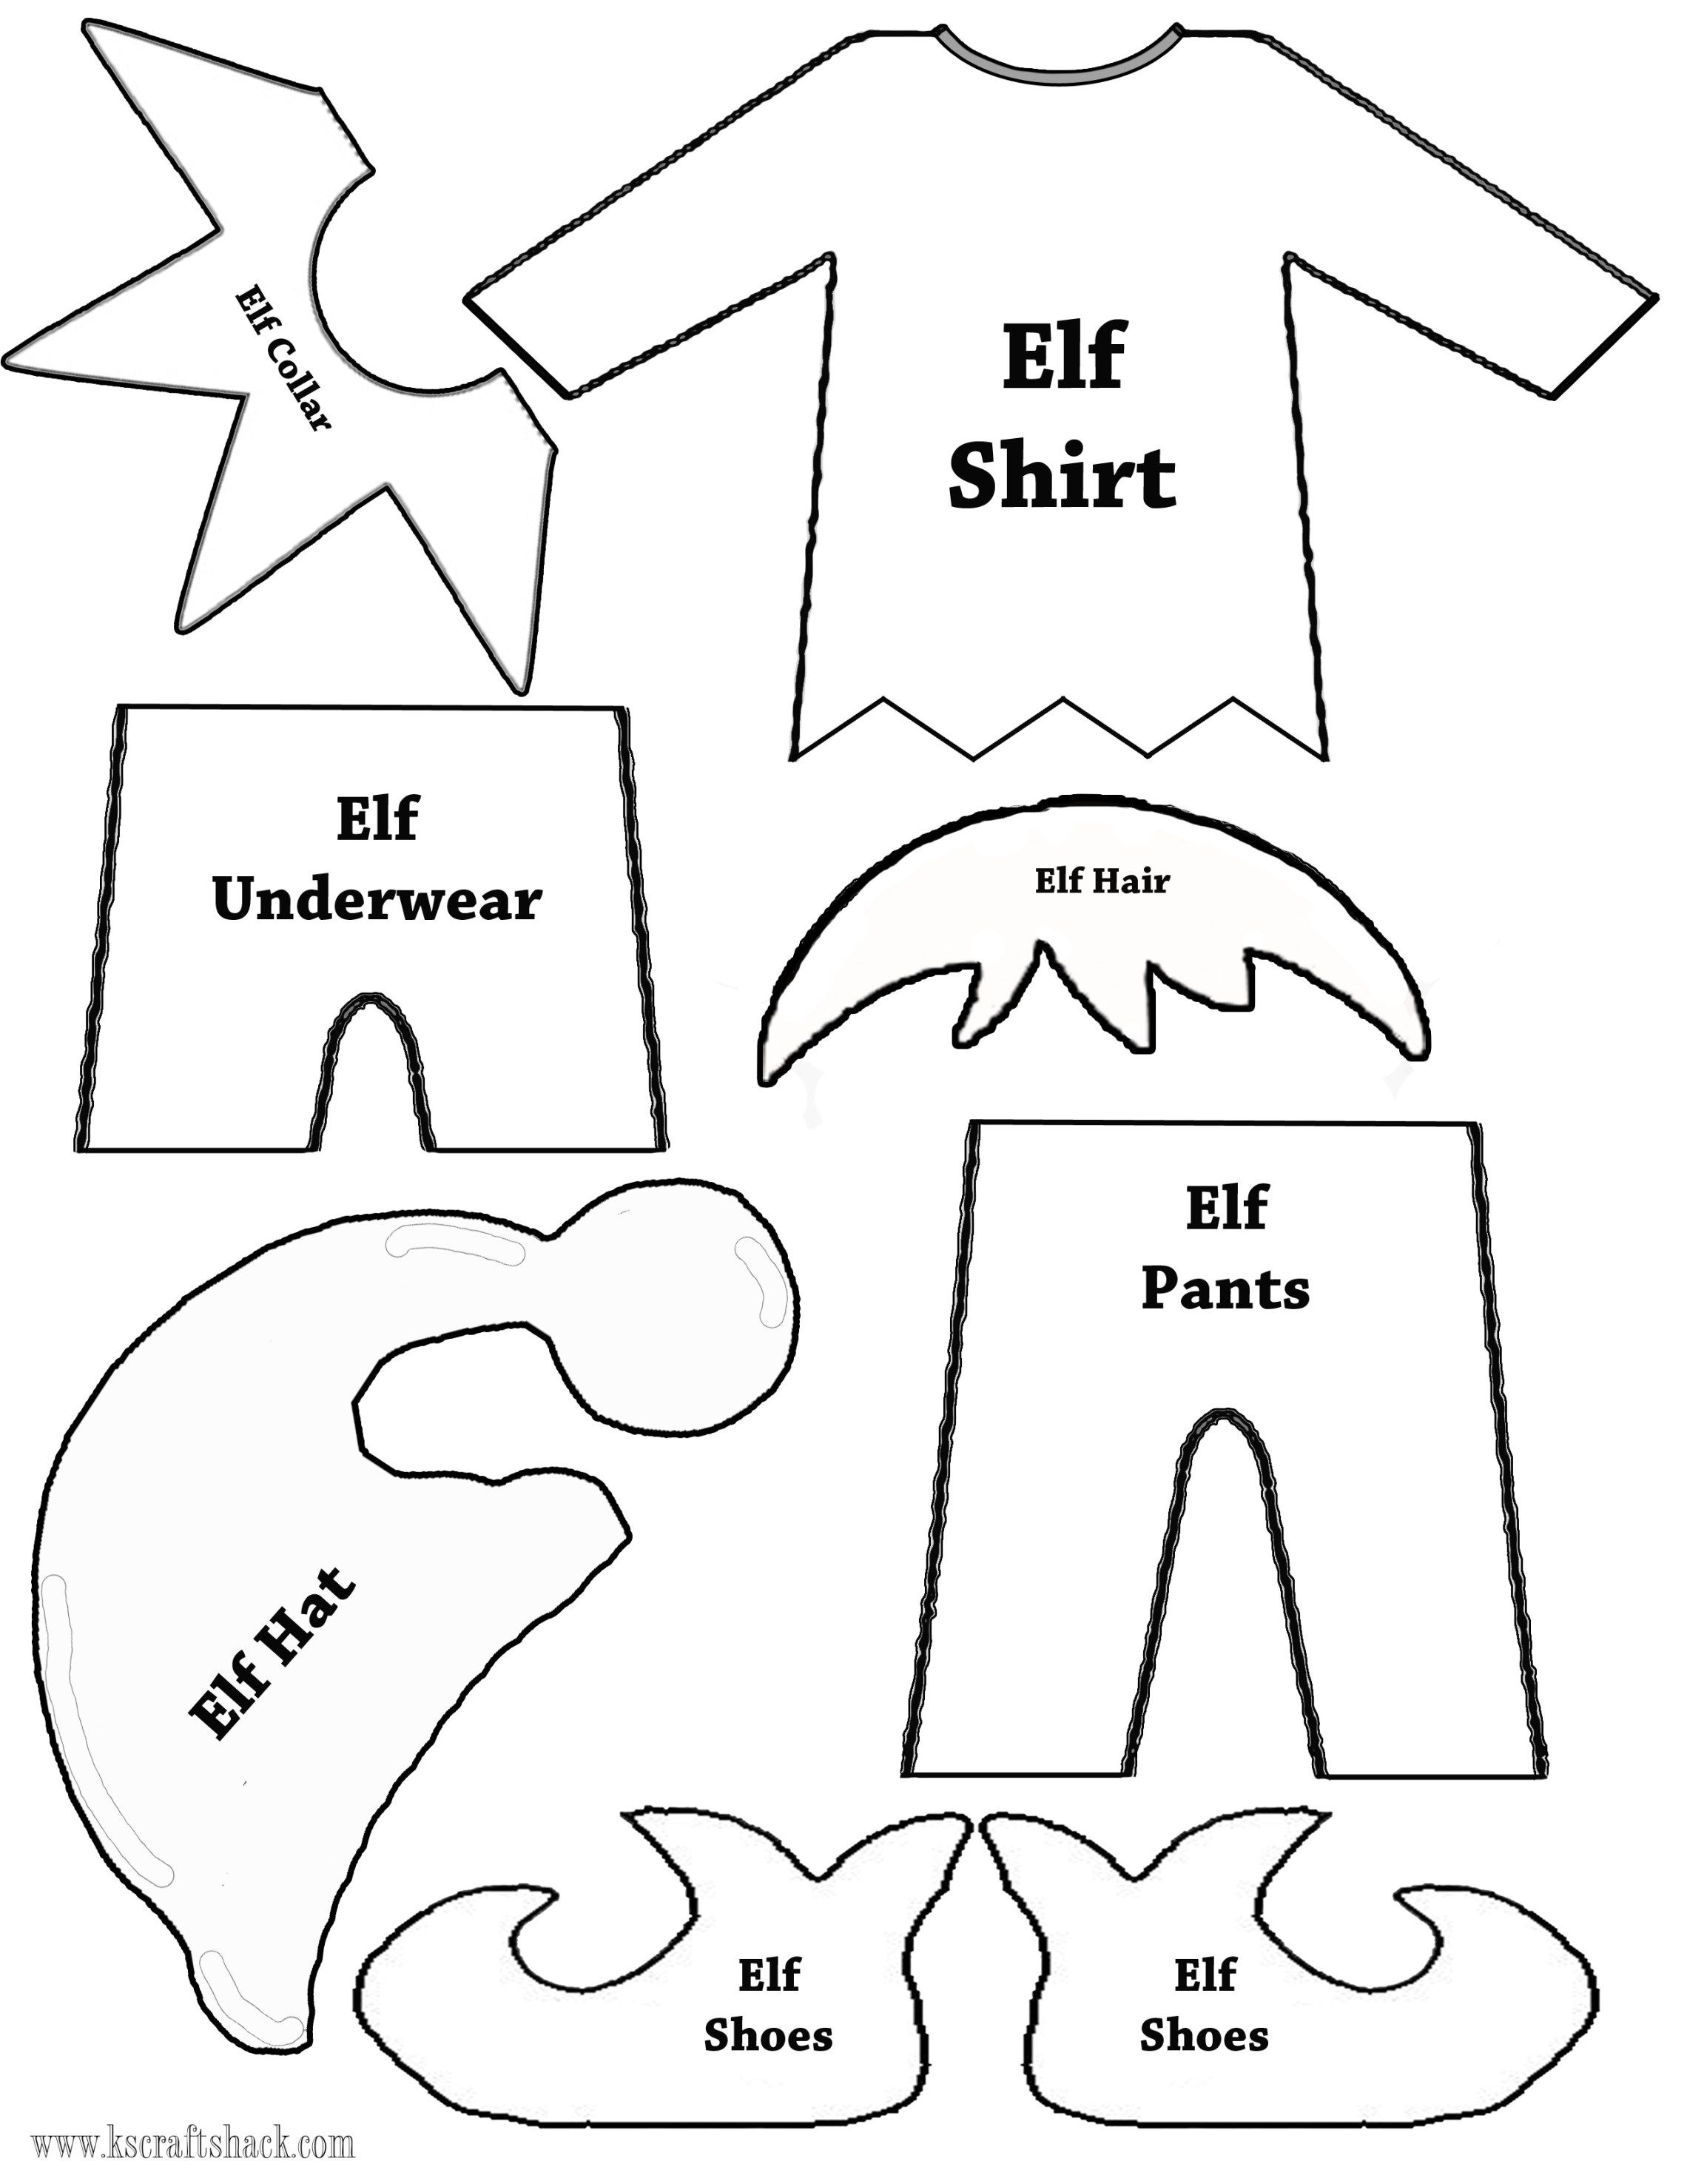 Elf Clothes And Parts Template